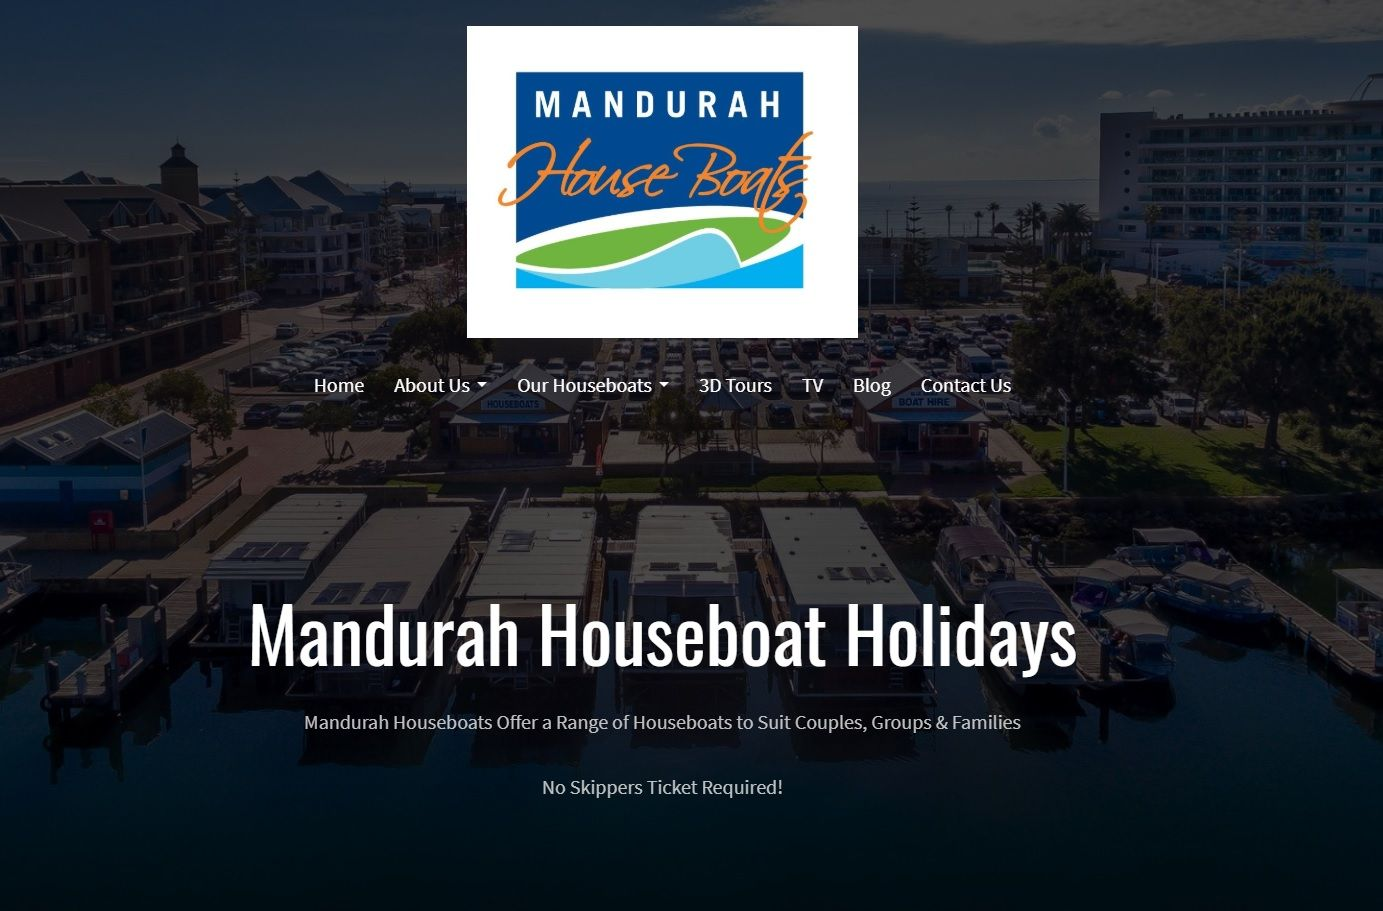 Citrus Marketing Mandurah - Mandurah Holidays Website Project